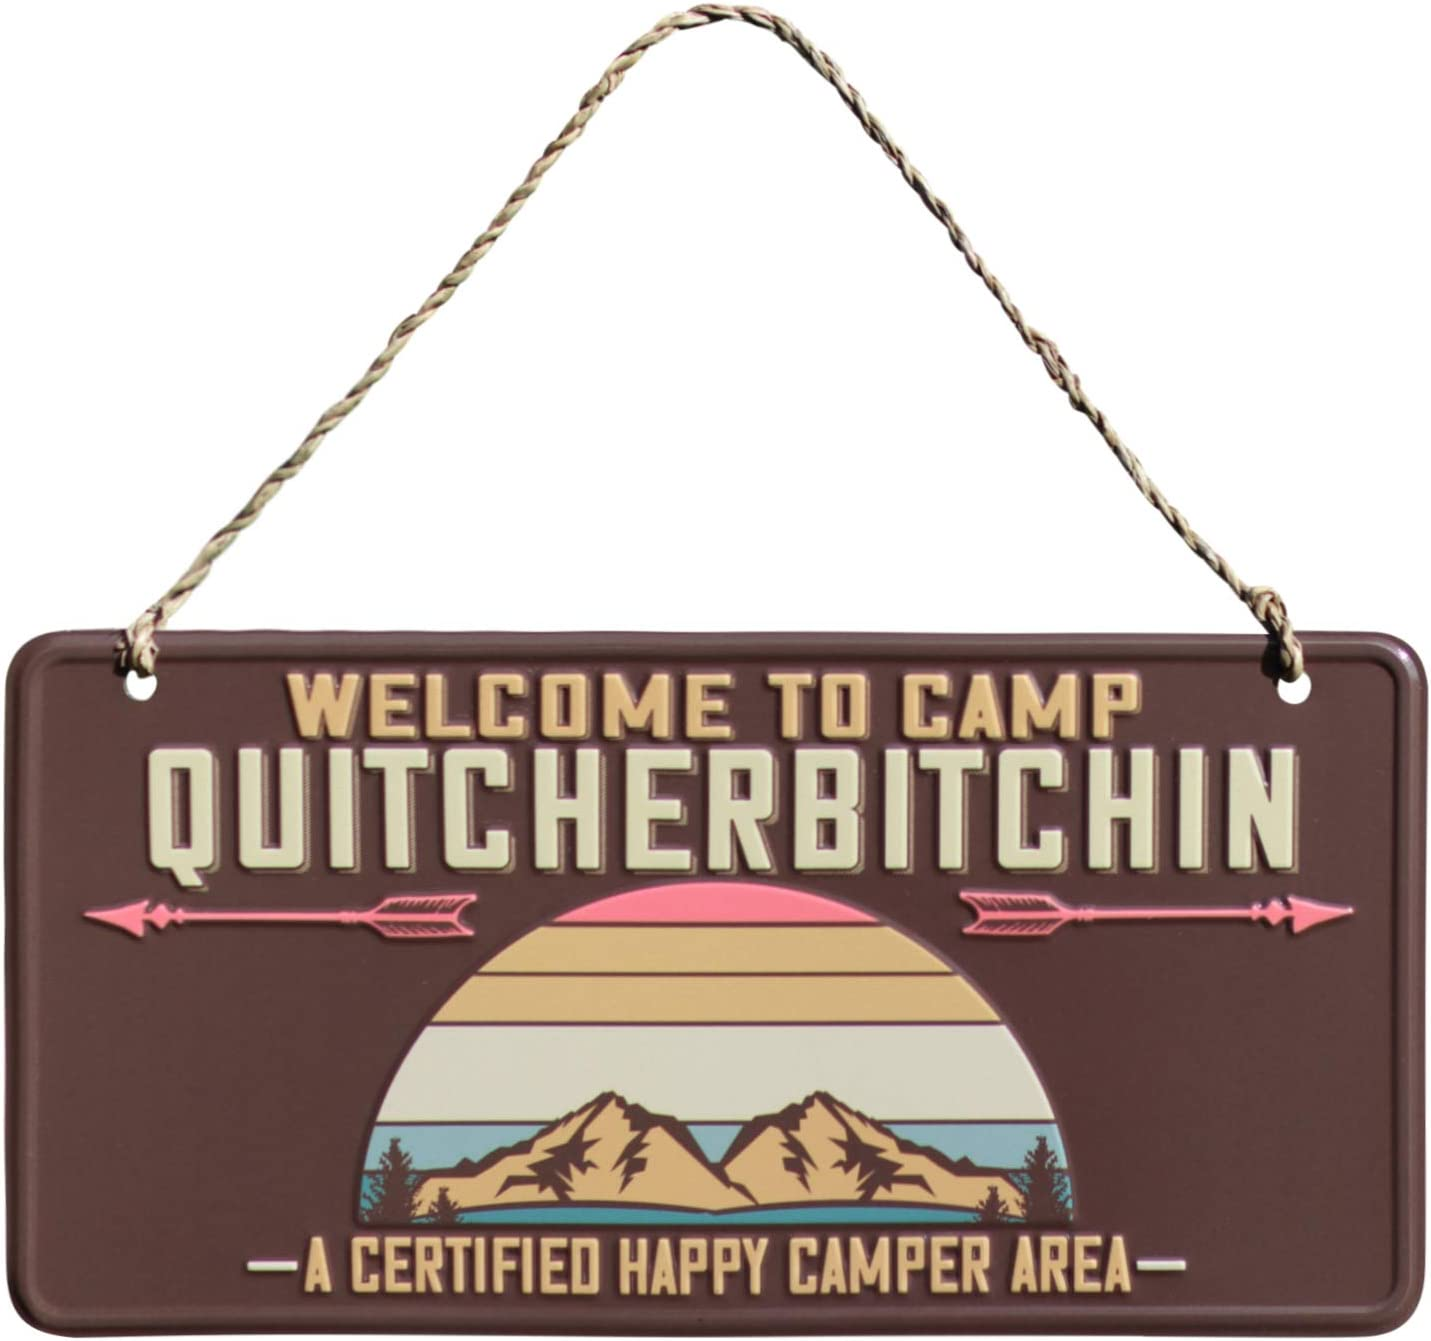 Camp Quitcherbitchin- Welcome Happy Camper Metal Sign - Man Cave Decor - Camping Decor For Camper, Rv Decor - Funny Sign For Camper decor, RV, Cabins, Garage decor, Man Cave decor, camper accessories